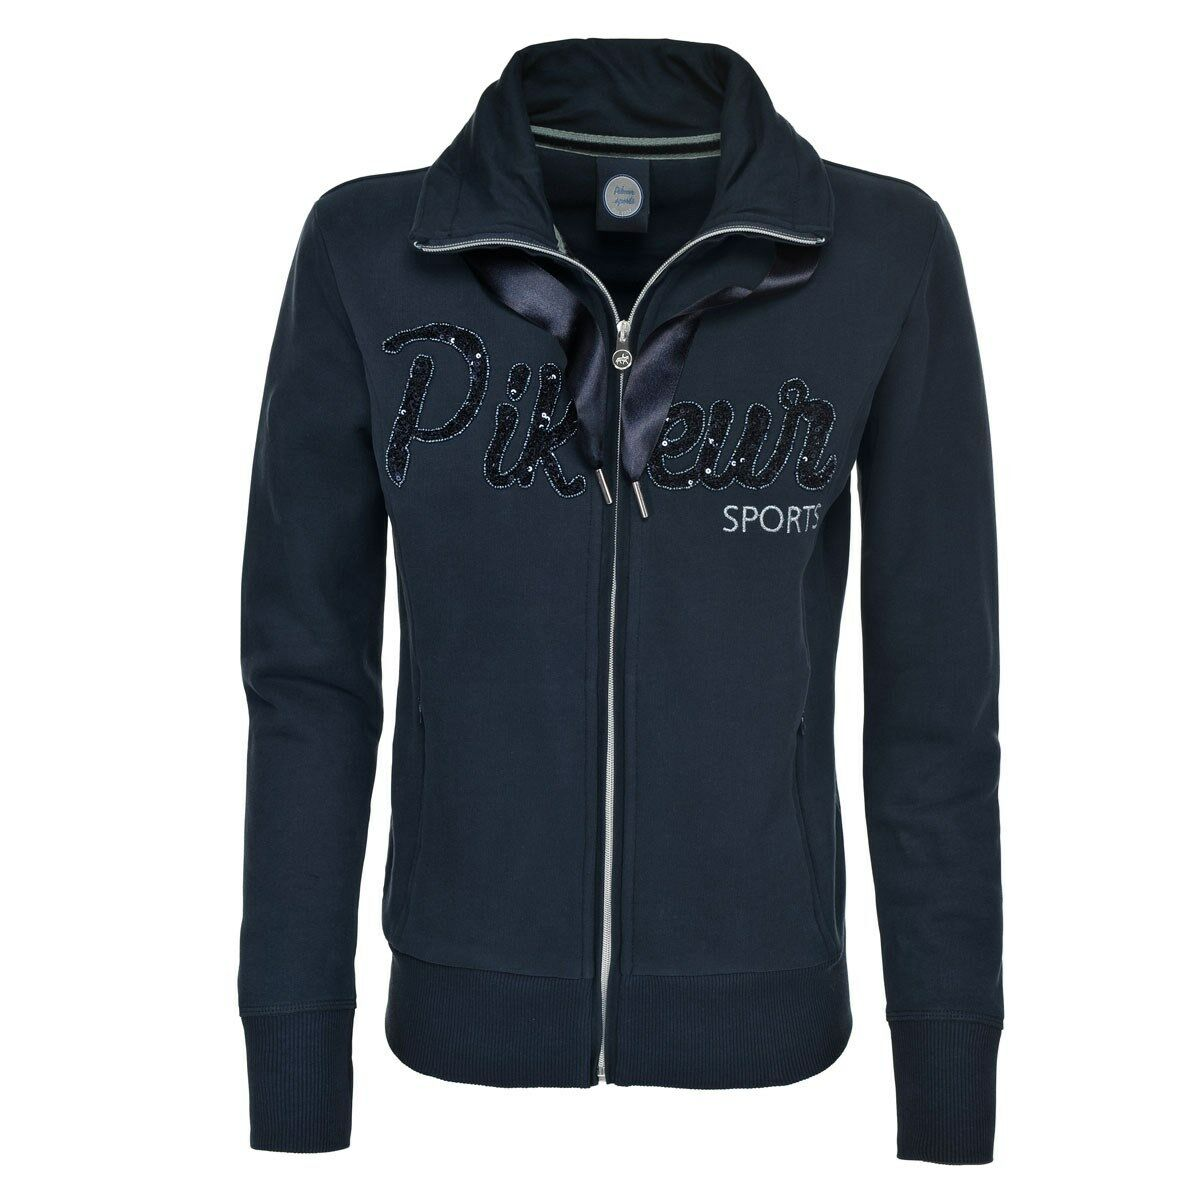 Pikeur Ladies Lisanne Zipped Sweatshirt Navy  38 (size 10)  save on clearance